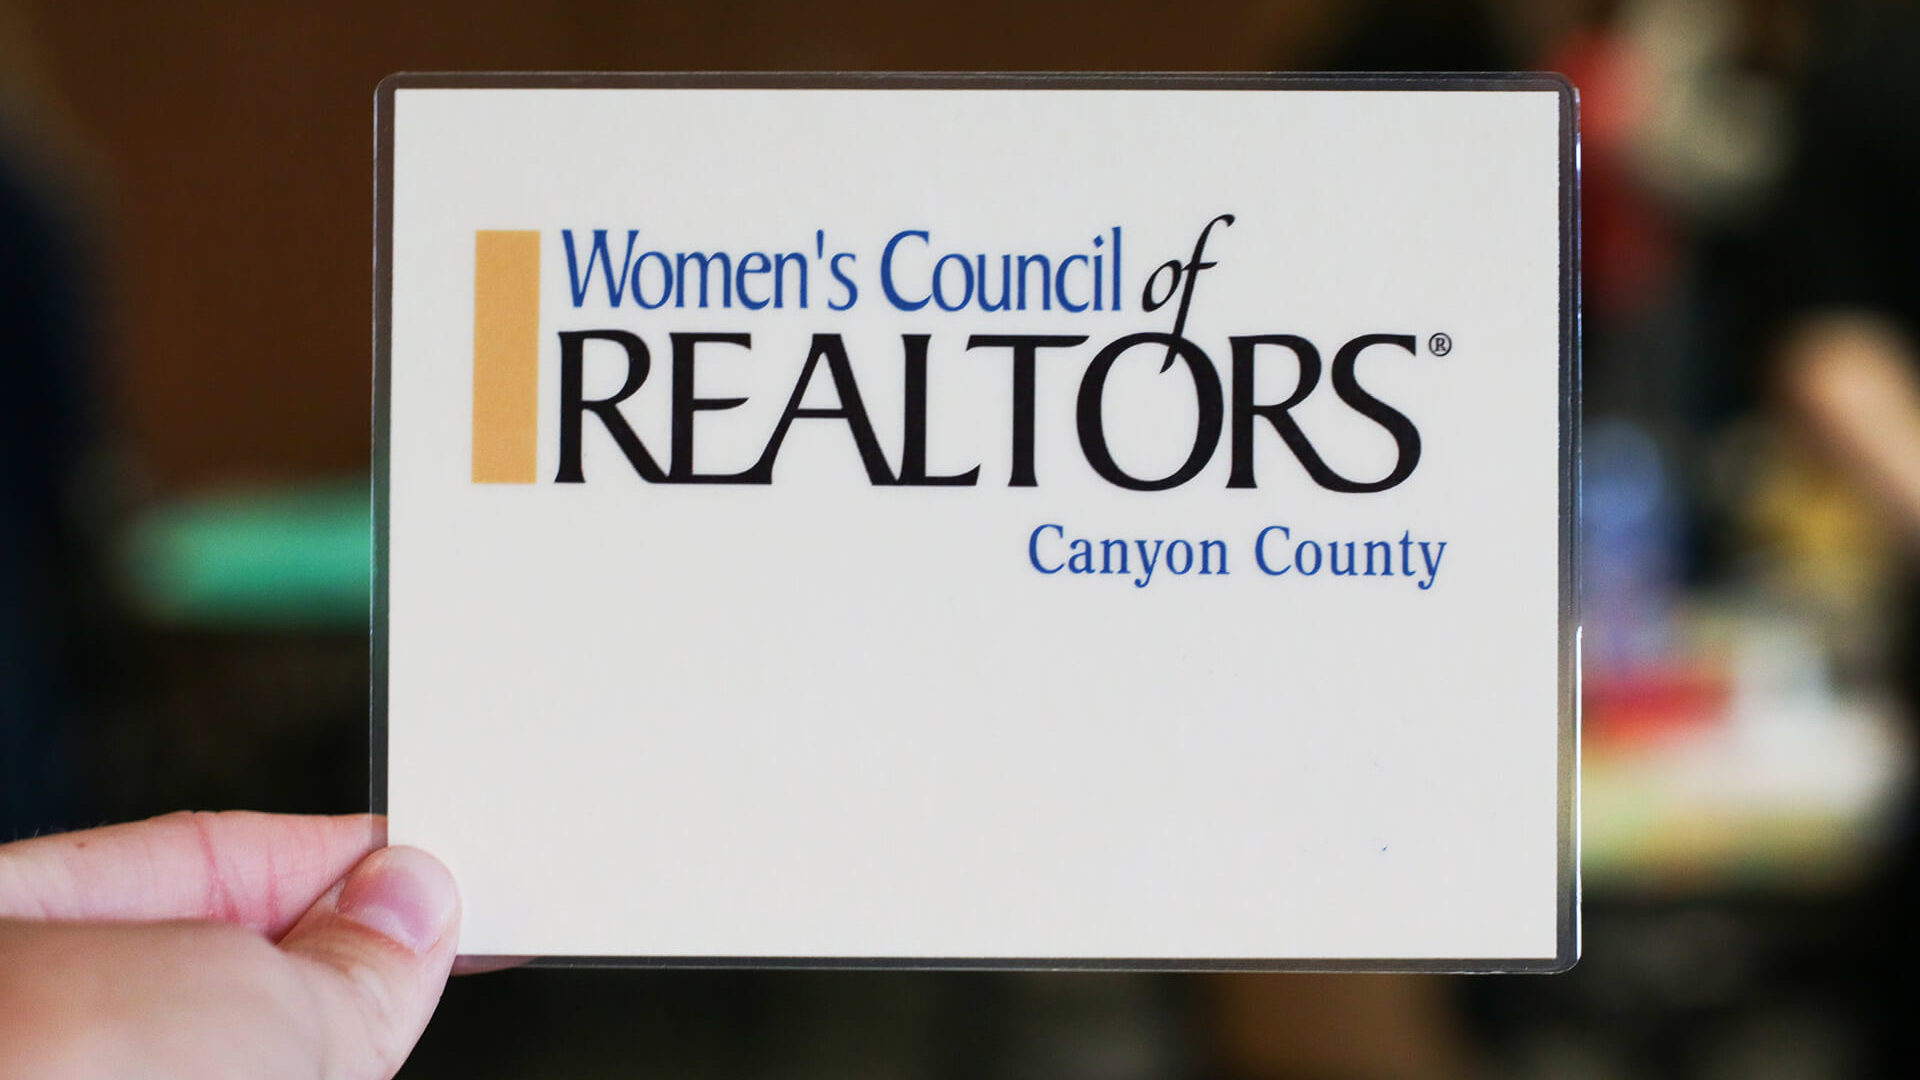 Women's Council of Realtors card held up with blurry background.jpg (1)